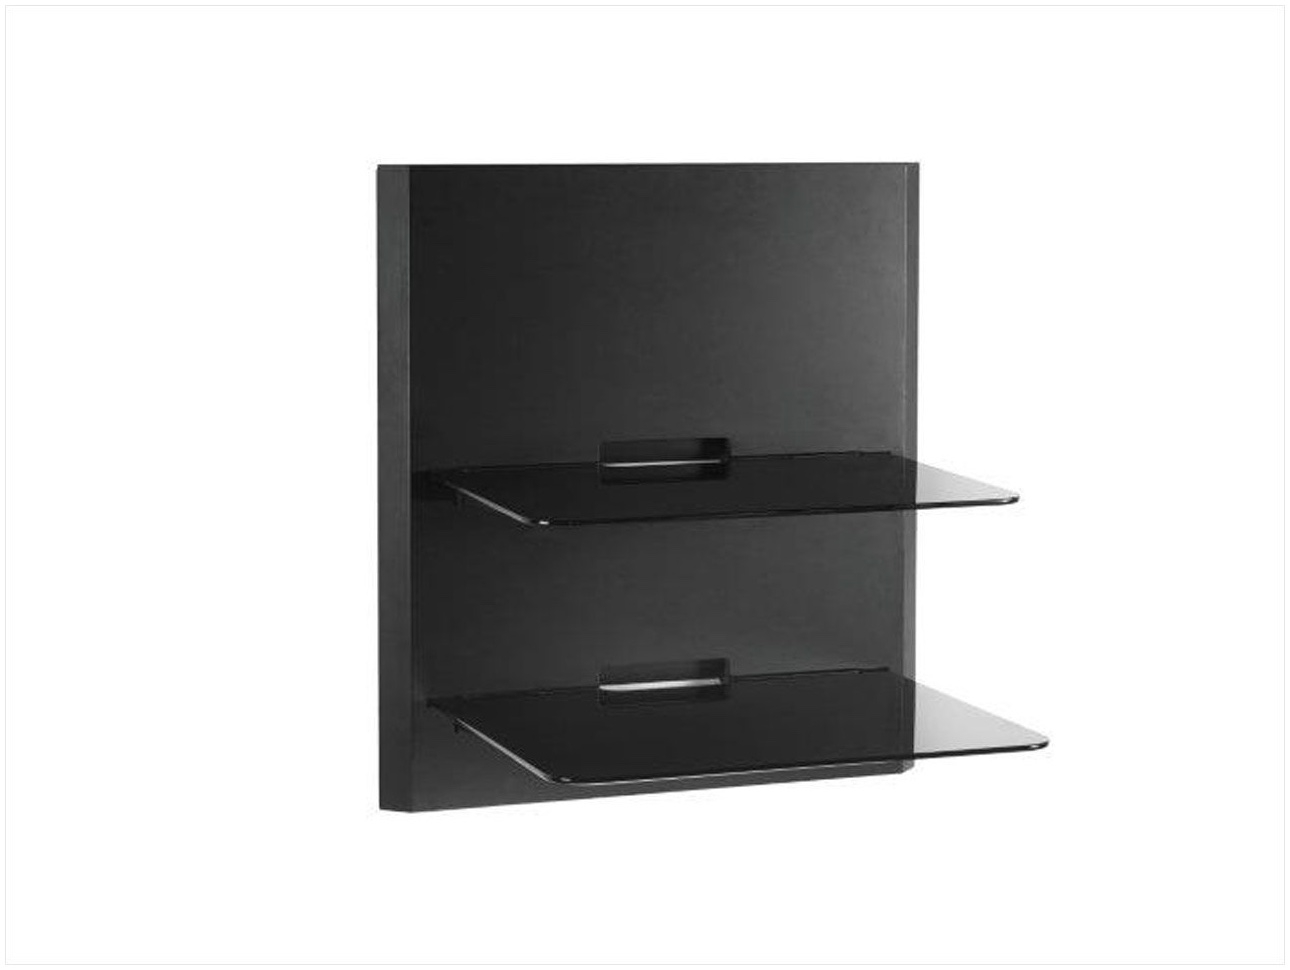 15 ideas of black glass shelves wall mounted Corner wall mounted shelves